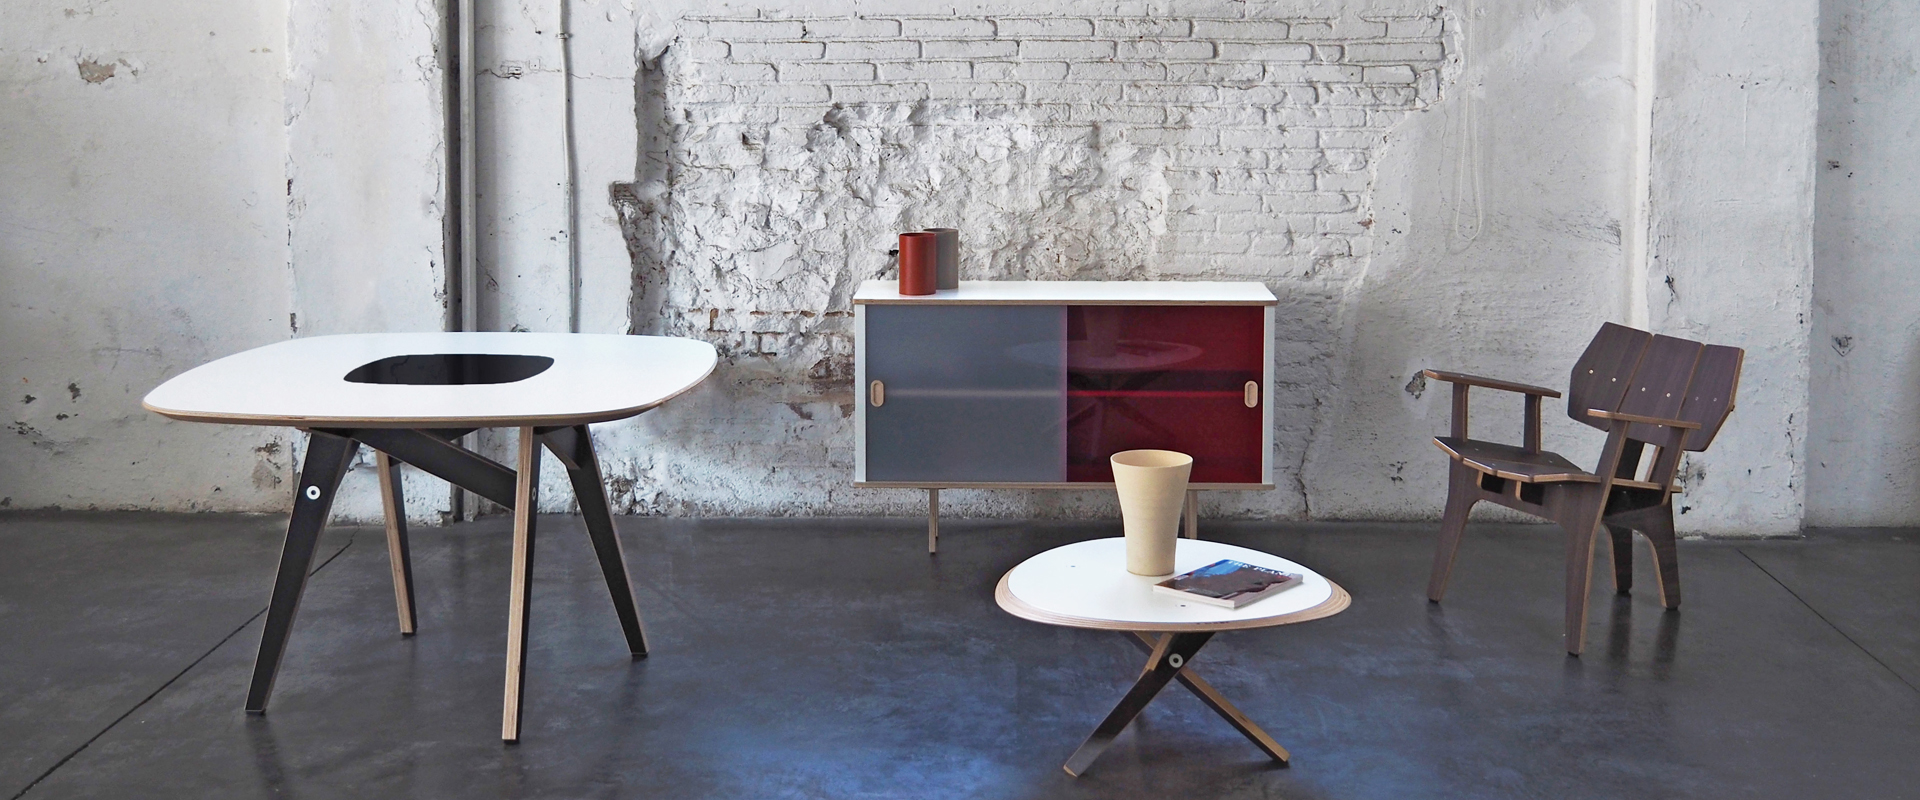 furniture-mediodesign-bcn